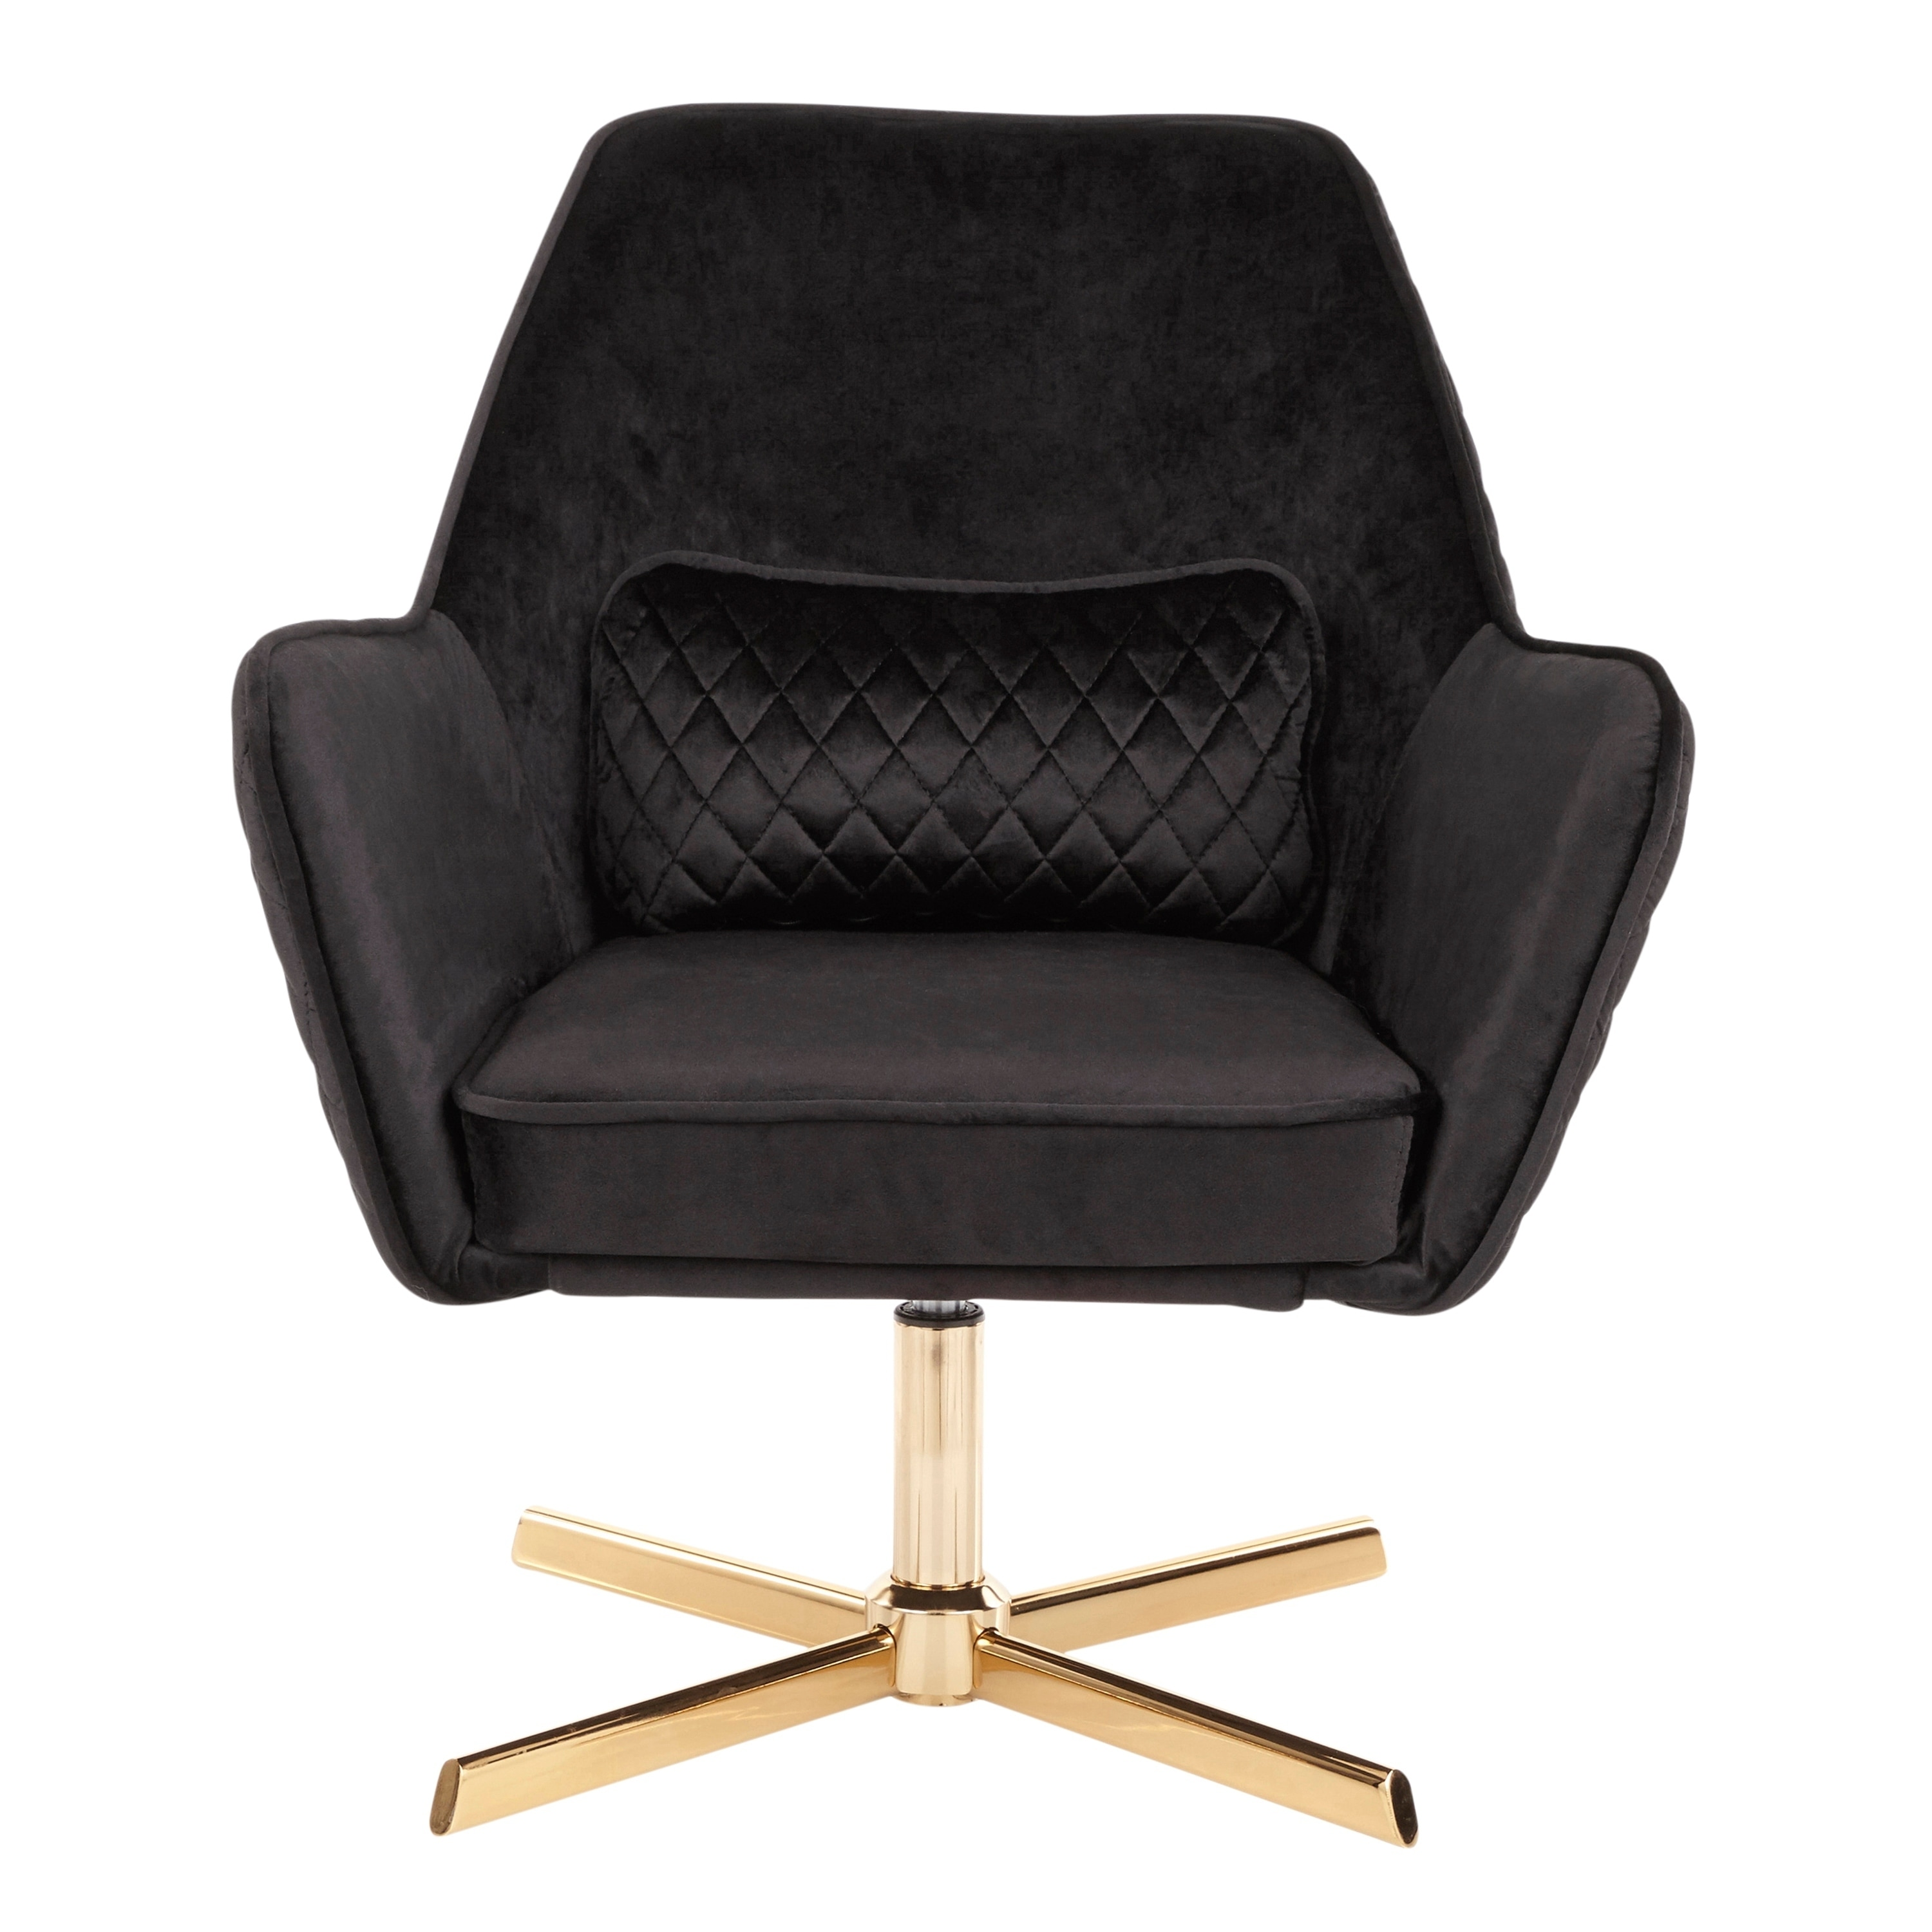 Divano Jesse Le Club Buy Velvet Swivel Living Room Chairs Online At Overstock Our